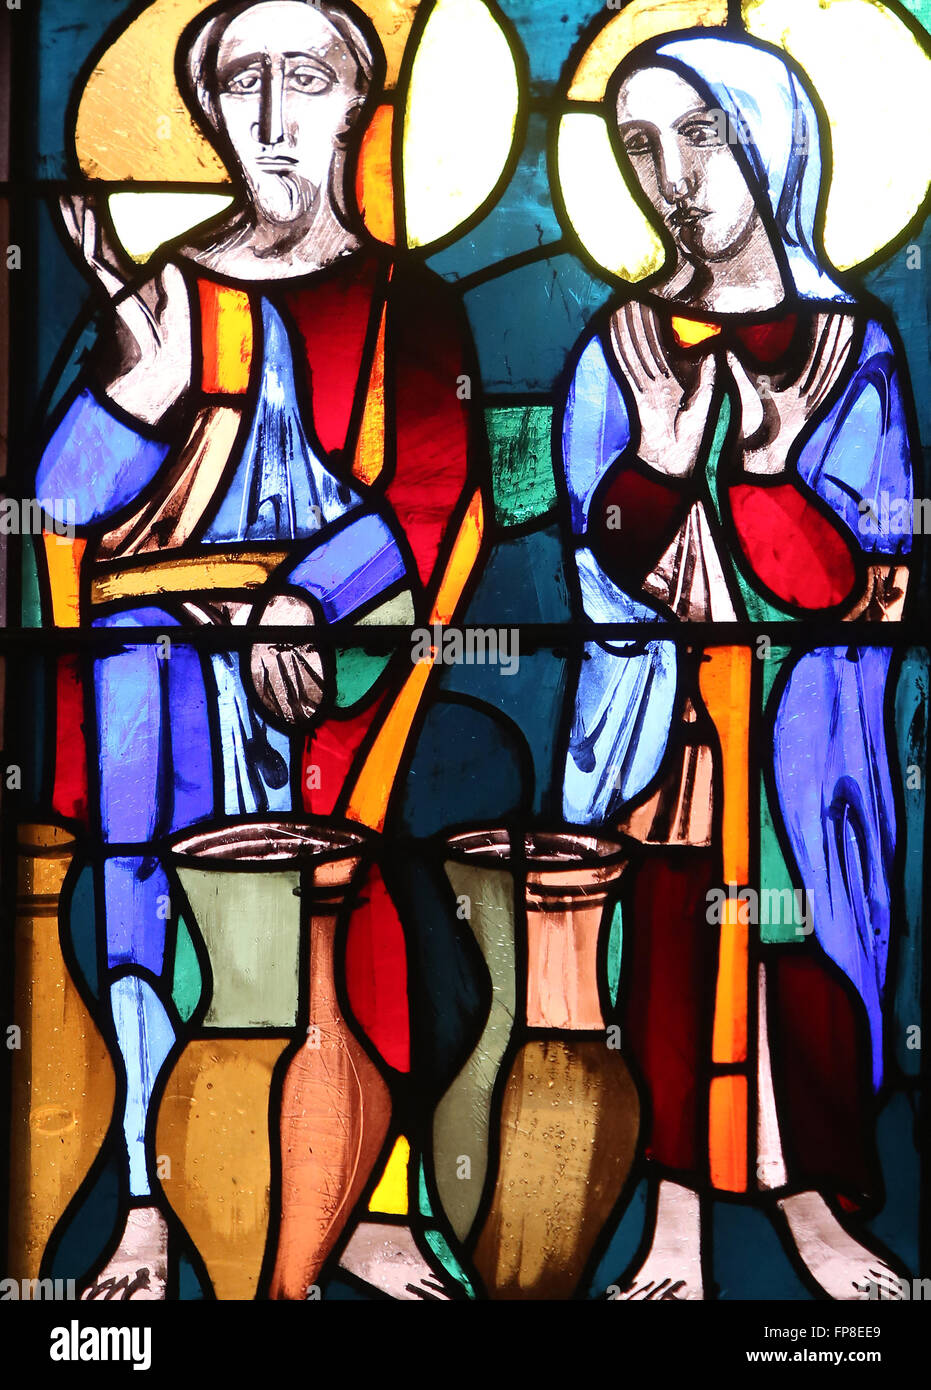 Wedding at Cana, stained glass window in Basilica of St. Vitus in Ellwangen, Germany Stock Photo